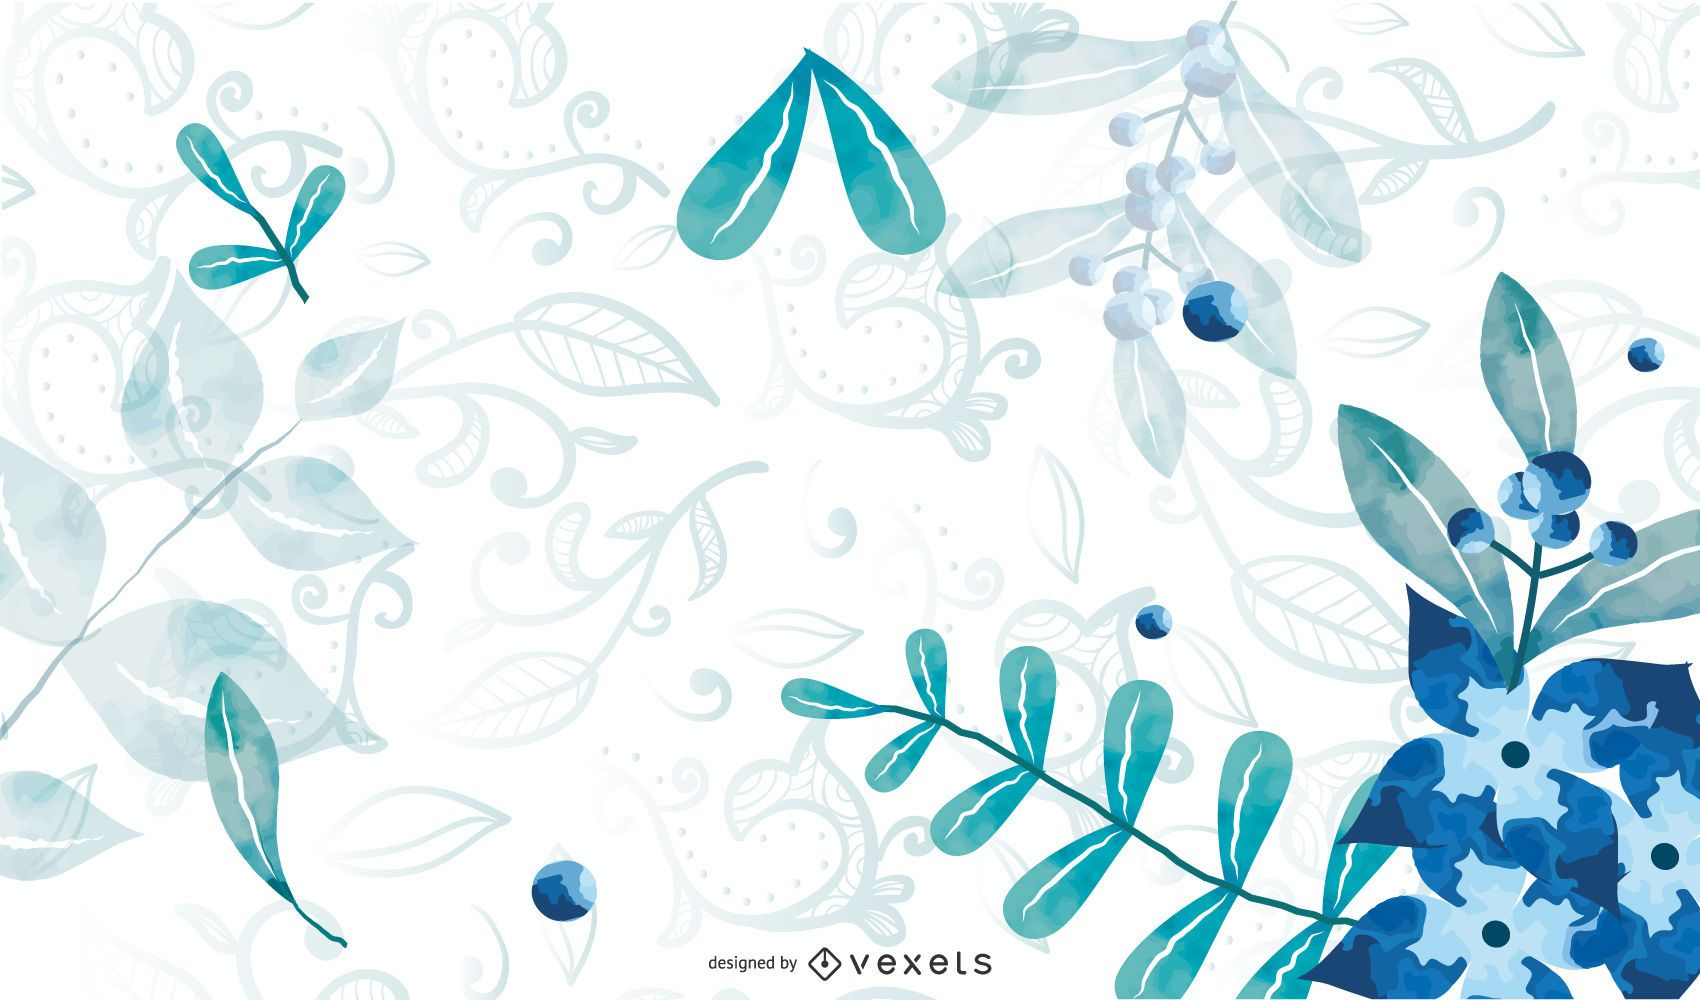 Abstract Floral Background with Blue Swirls